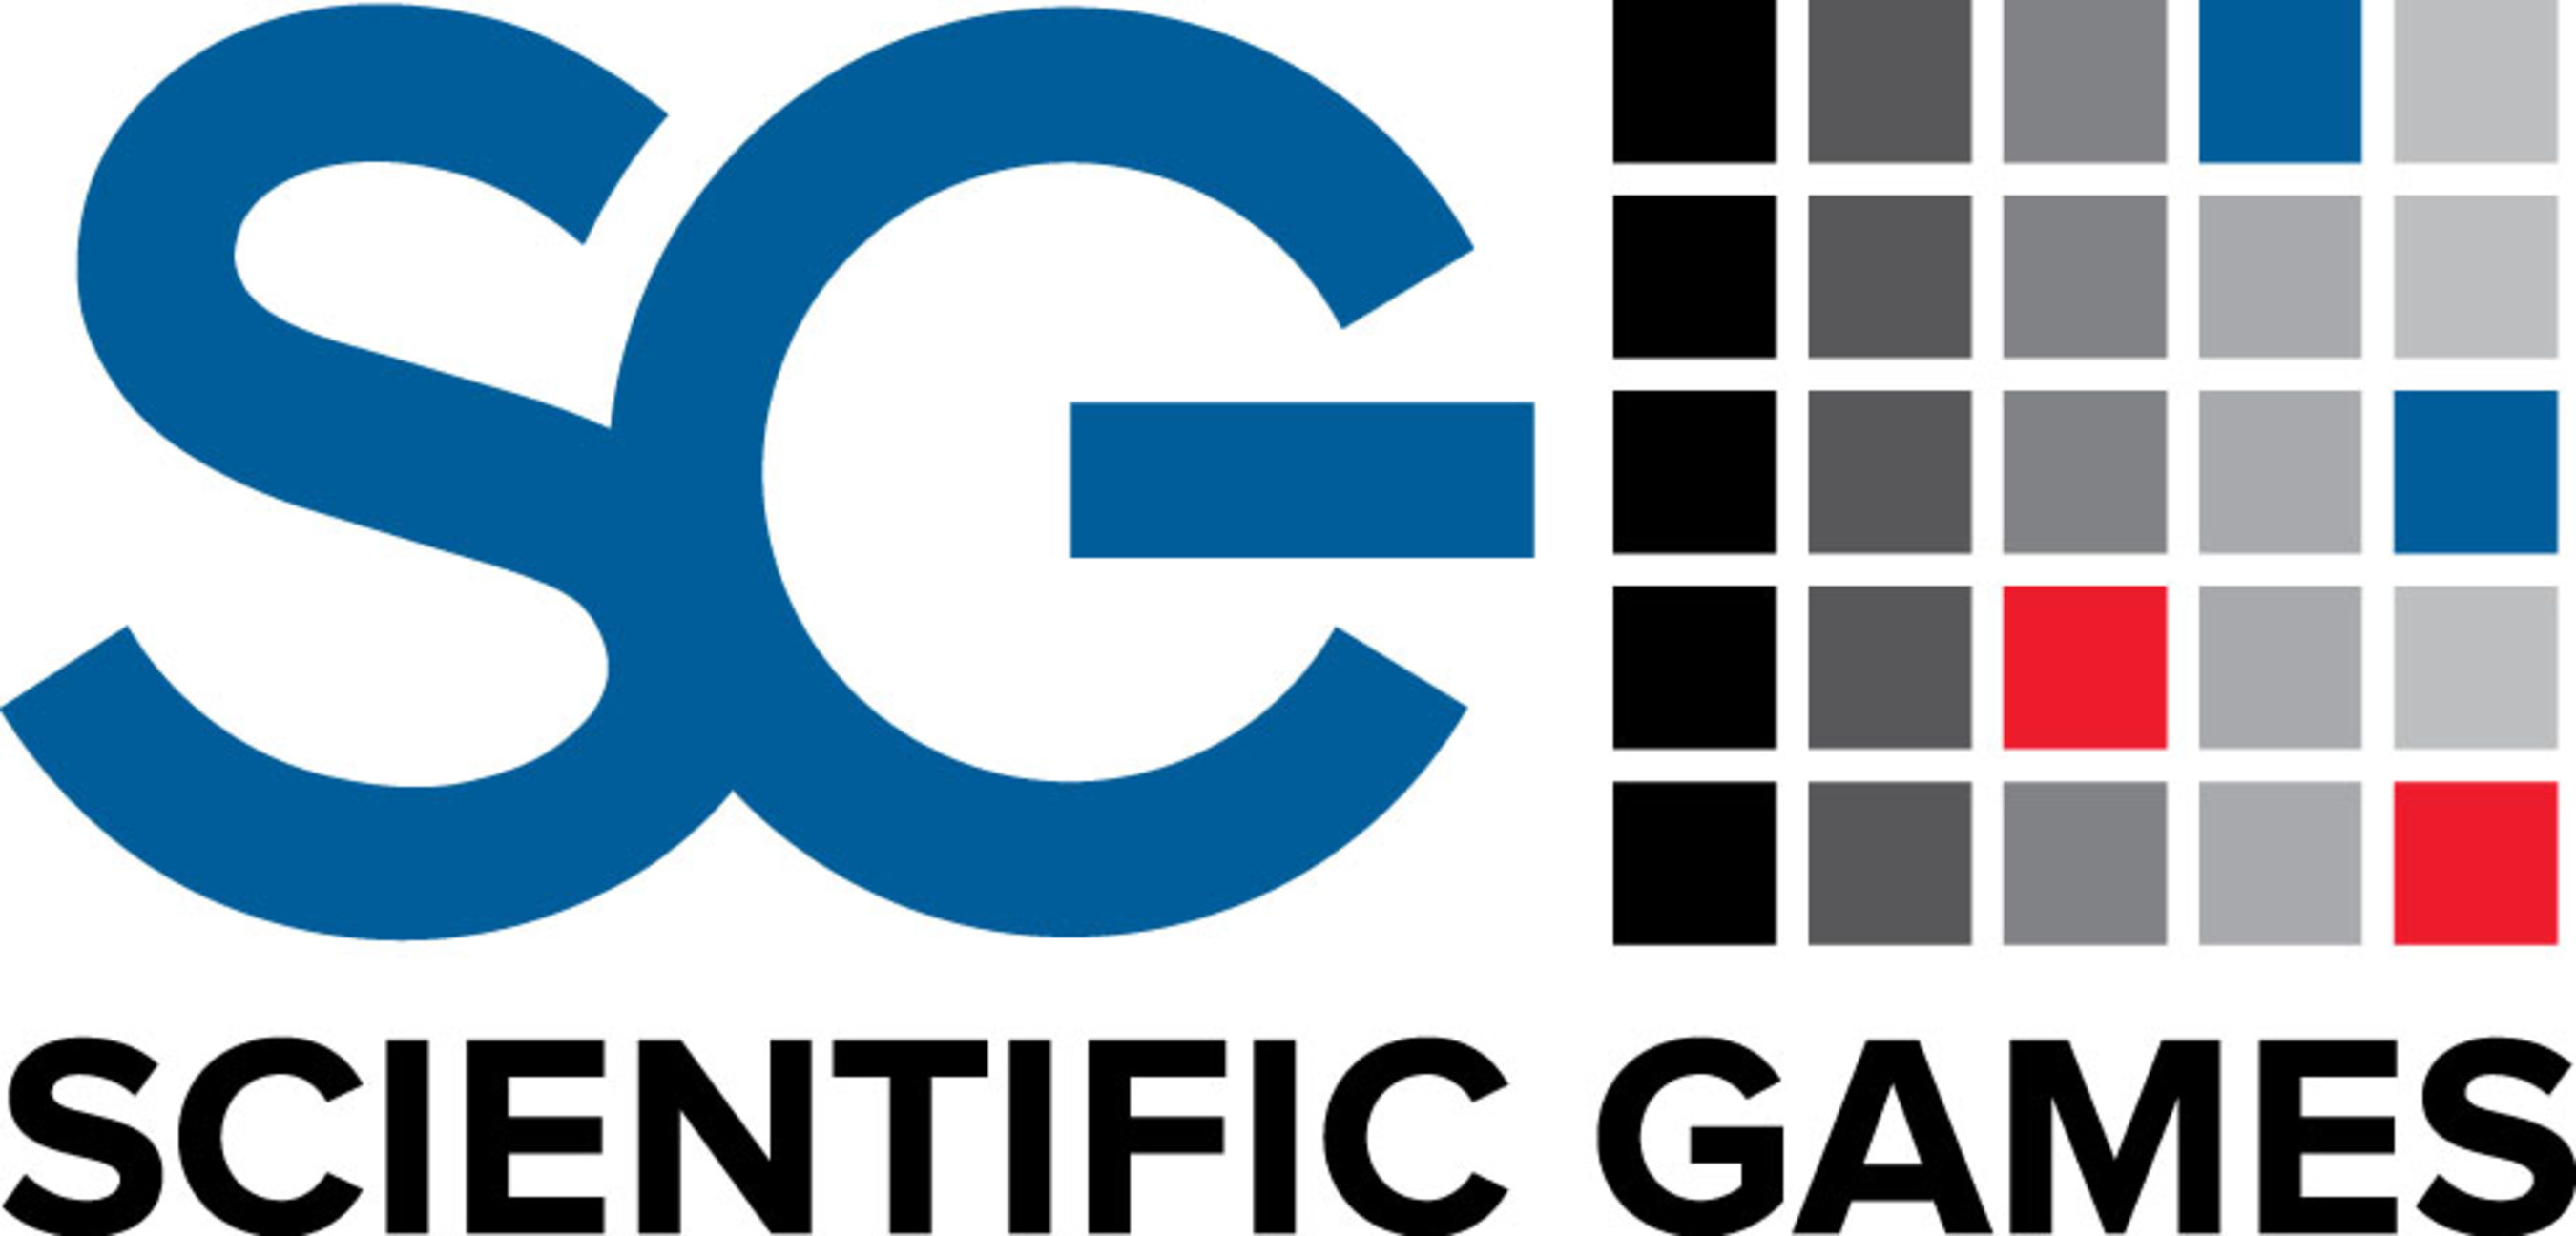 Scientific Games Announces Kevin M. Sheehan as New CEO and President - Gavin Isaacs to Become Vice Chairman of the Board